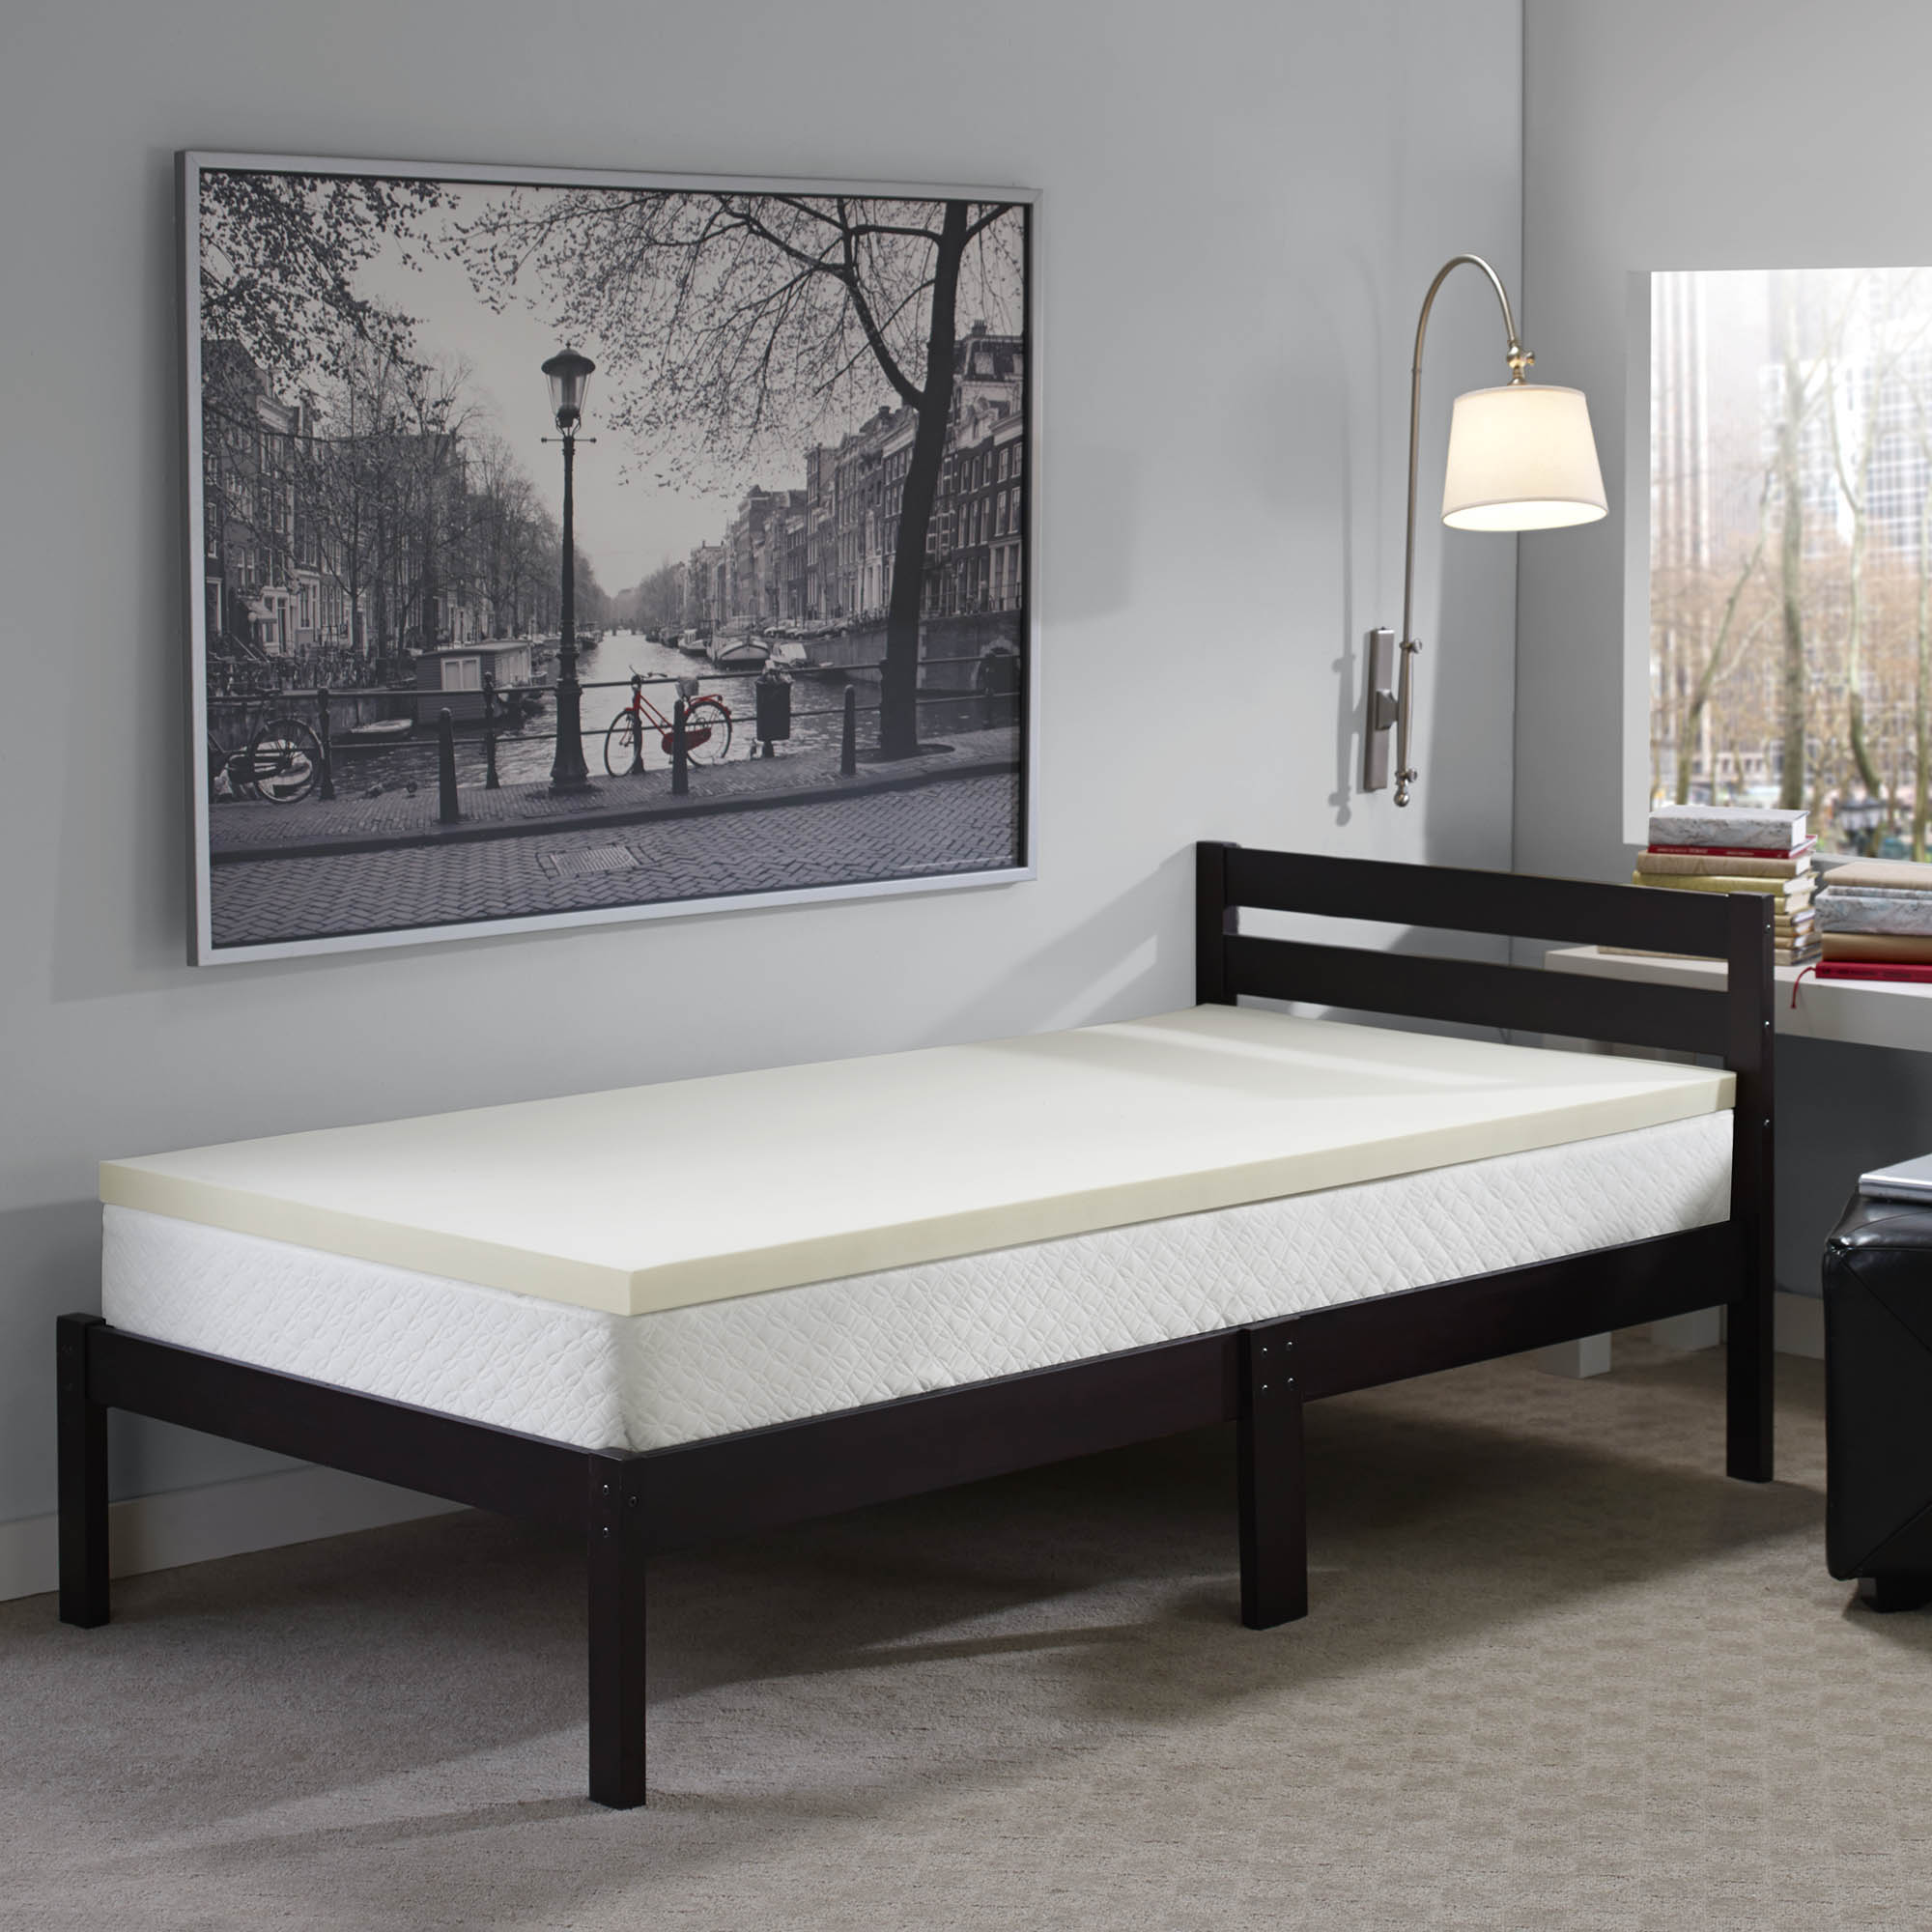 Tempurpedic Vs Sleep Number >> Twin vs Twin XL Size | Beddingvs